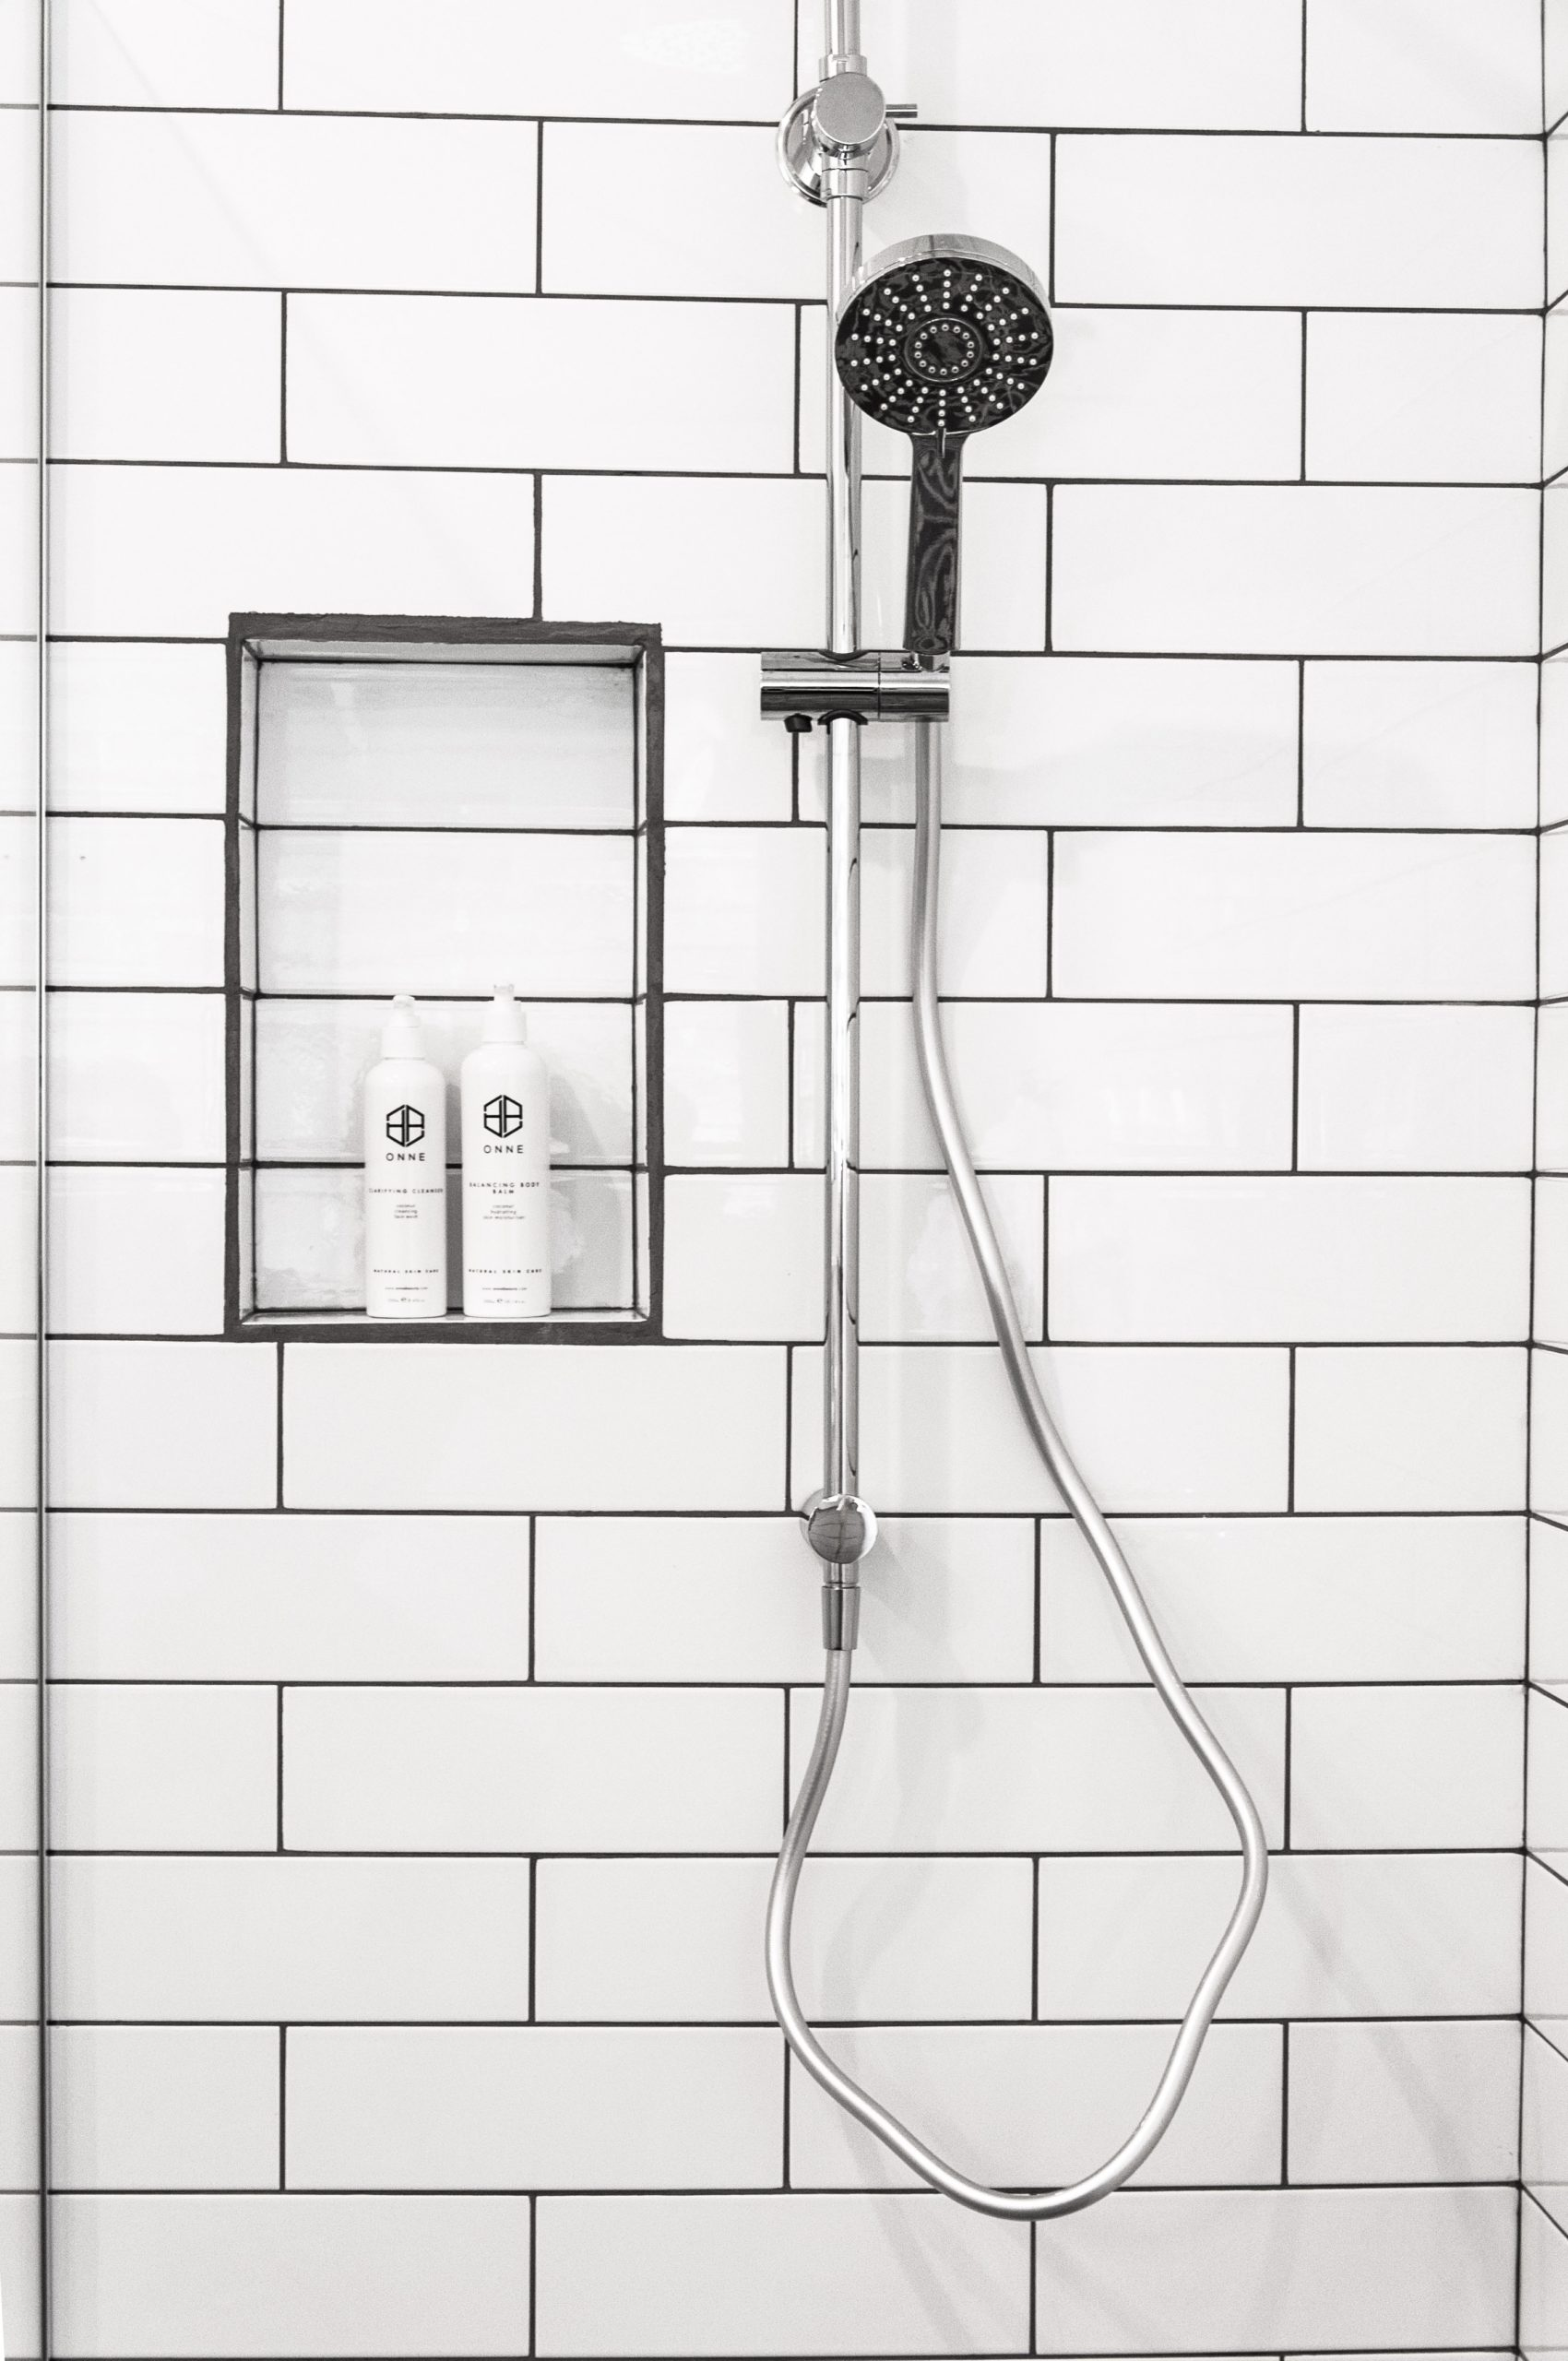 How To clean shower head